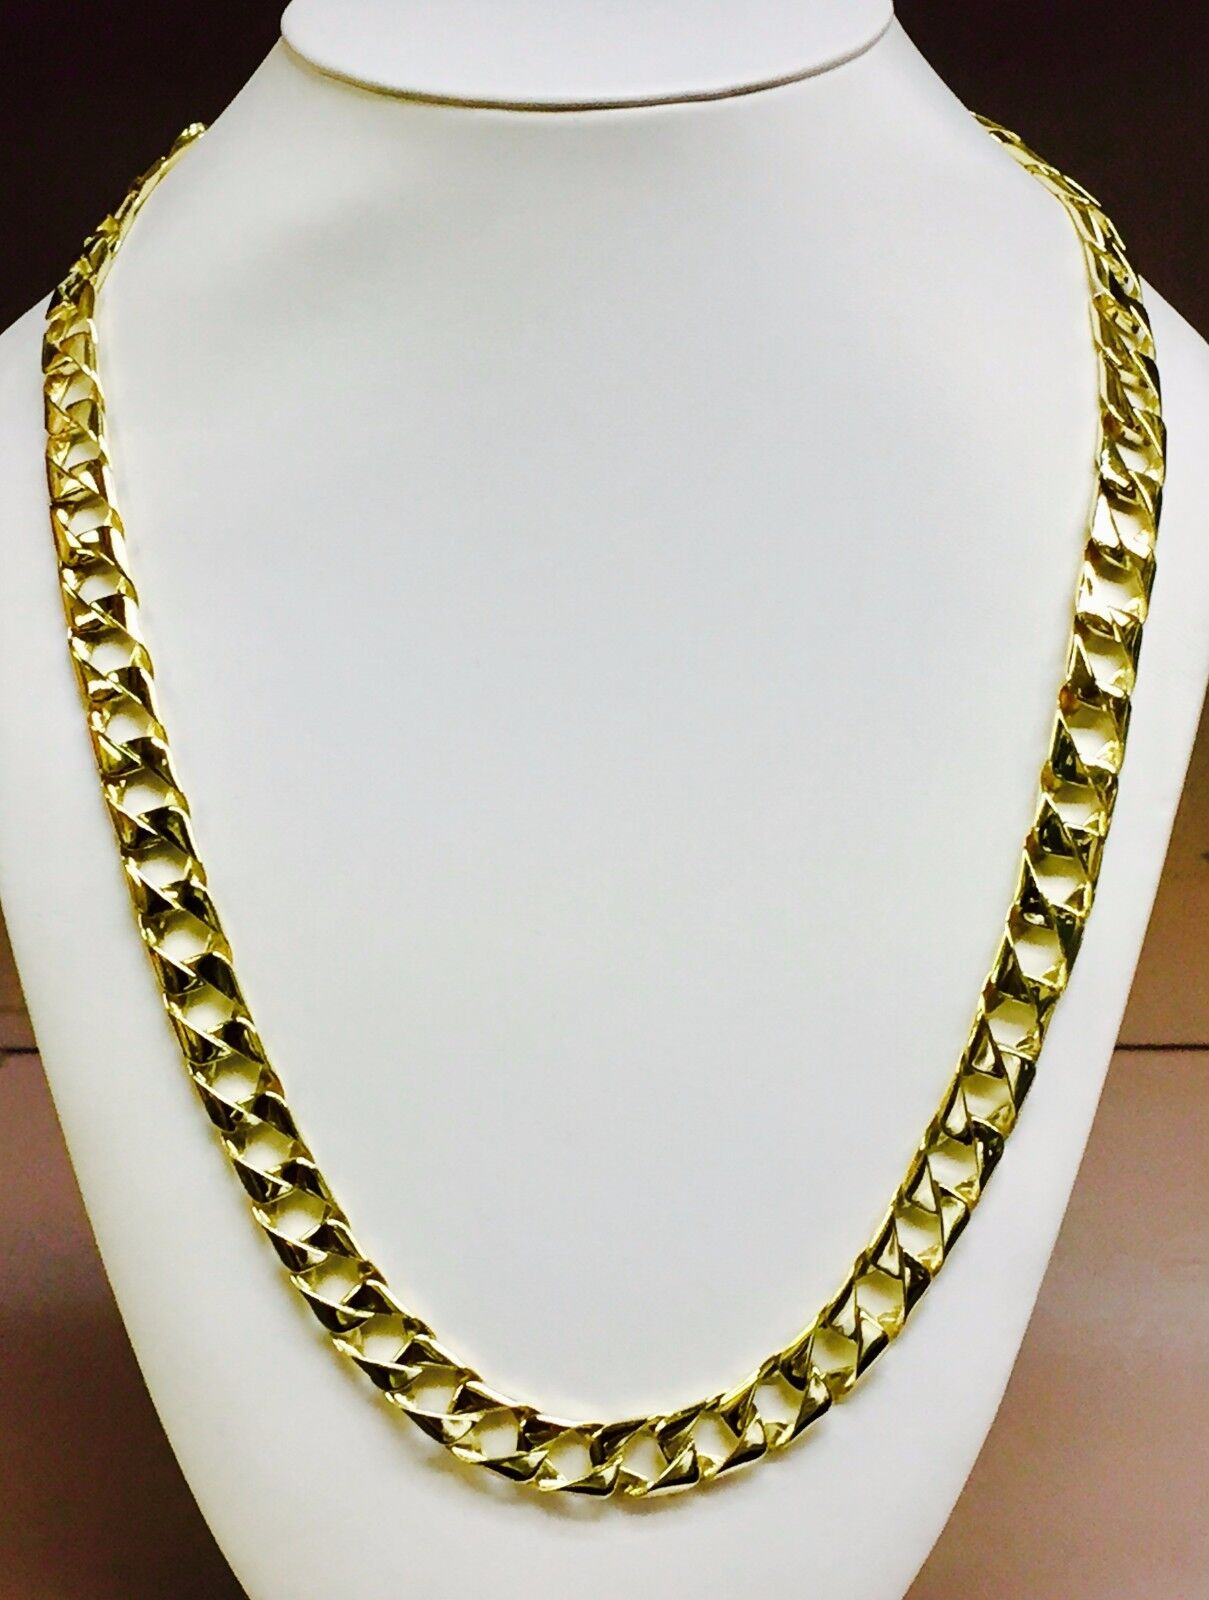 18kt Solid Yellow Gold Handmade Curb Link Mens Chain